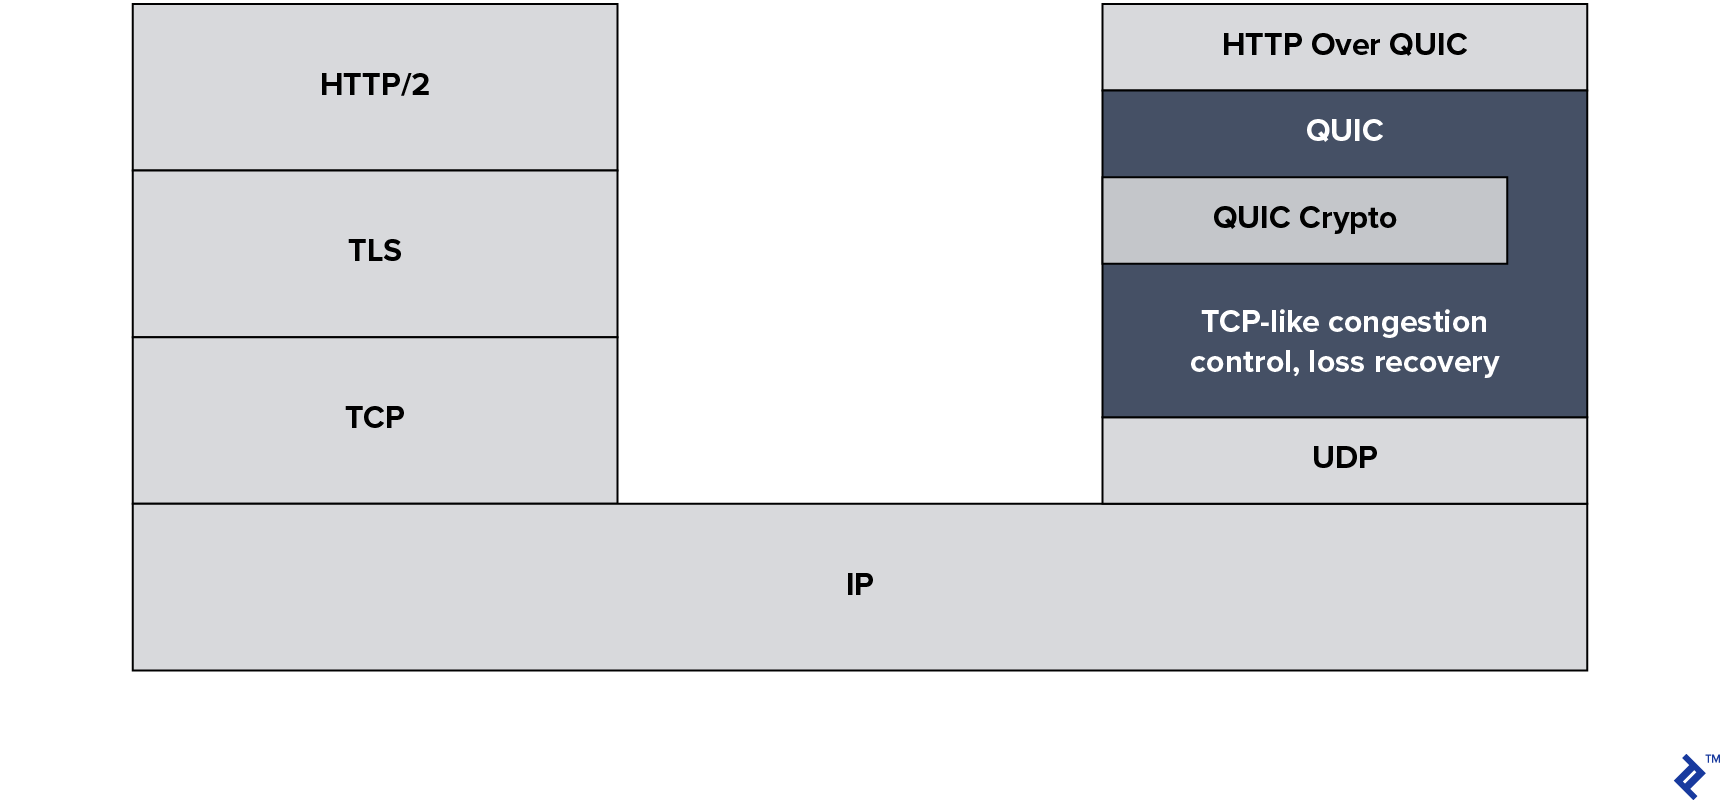 "QUIC OSI model, showing IP as a base, with two stacks built on top of it.  The left-hand HTTP protocol stack adds TCP, TLS, and HTTP/2 on top of IP.  The right-hand HTTP protocol stack adds UDP, a special block, and ""HTTP over QUIC"" on top of IP.  The special block contains QUIC and TCP-like congestion control and loss recovery, and within it, a separate block for QUIC crypto."